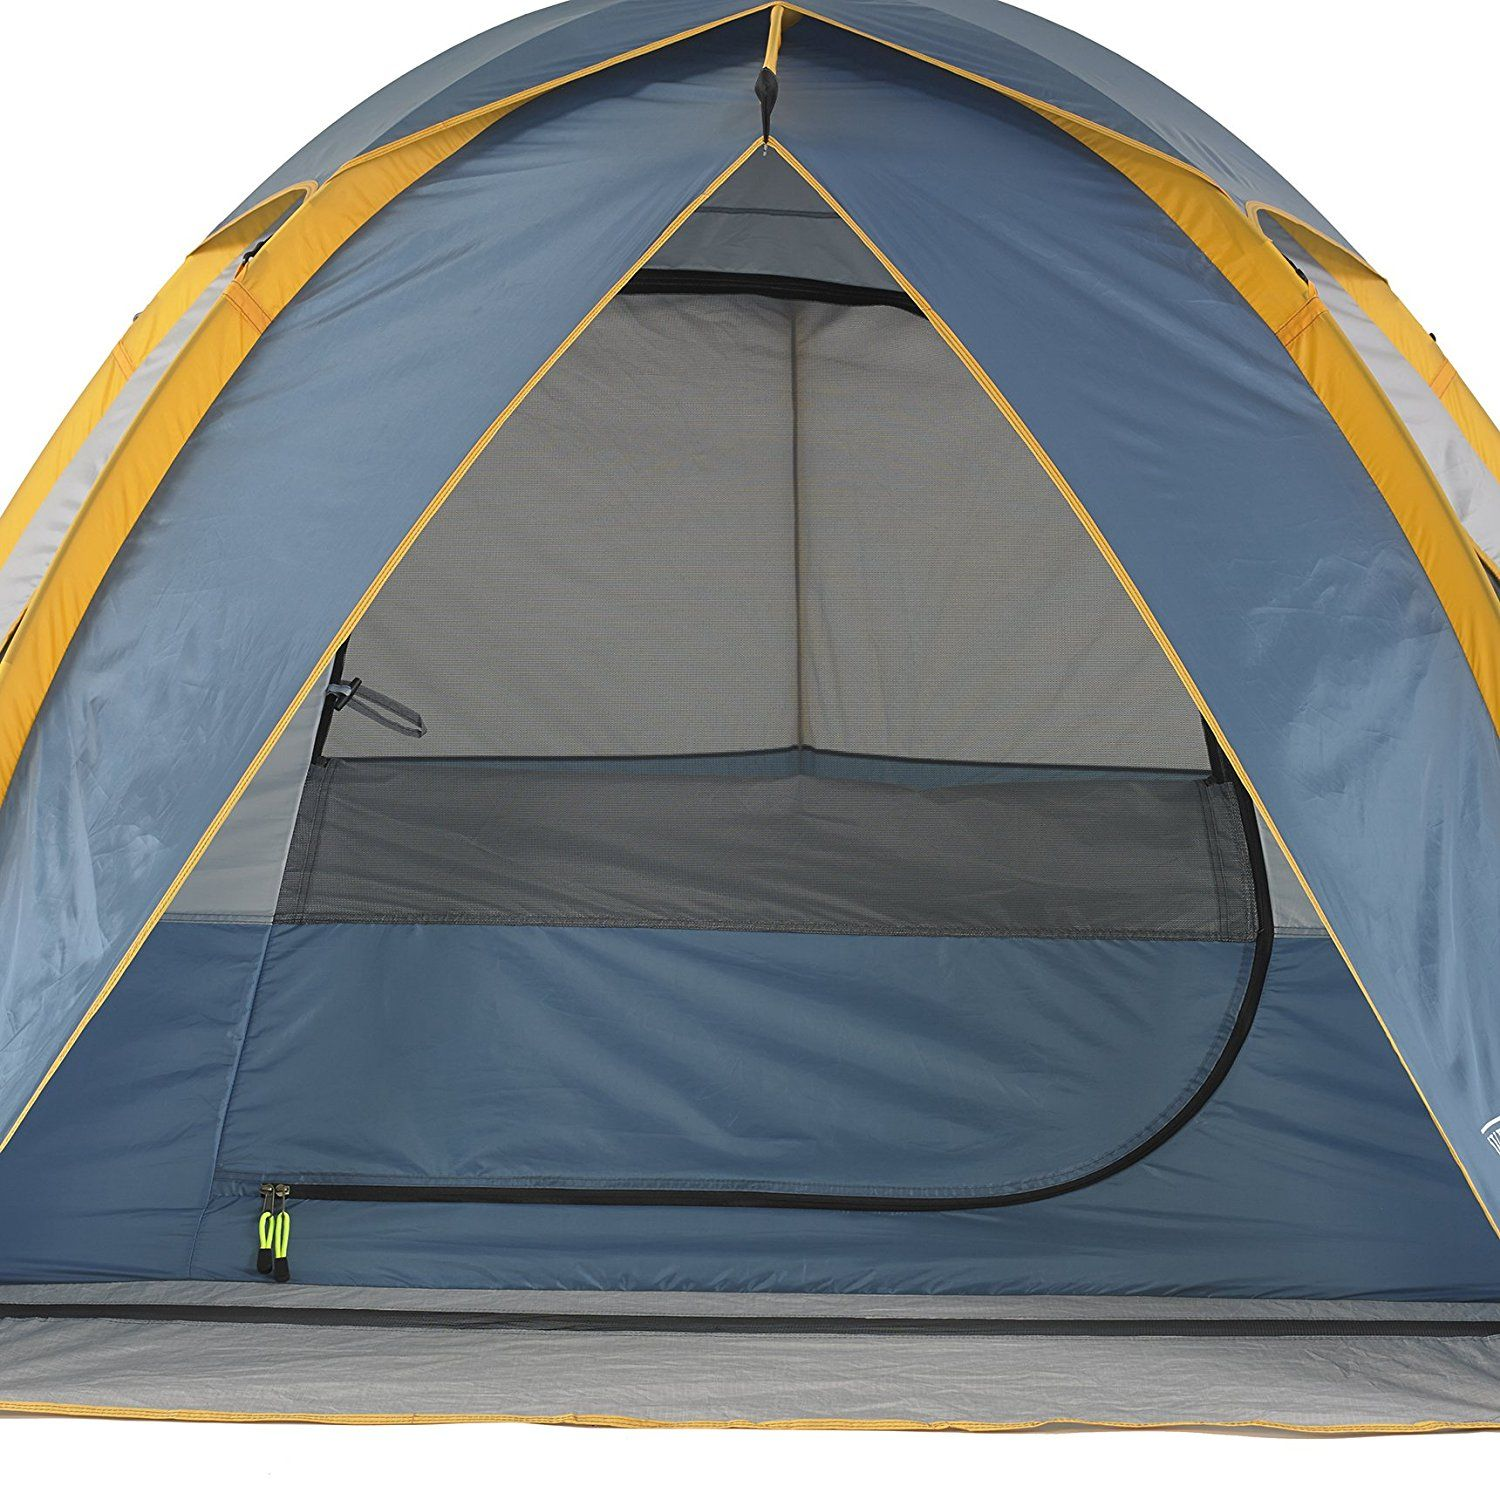 Wenzel Three Person Alpine Tent. Shock-corded fiberglass frame for quick and easy setup  sc 1 st  Pinterest : tents easy to put up - memphite.com